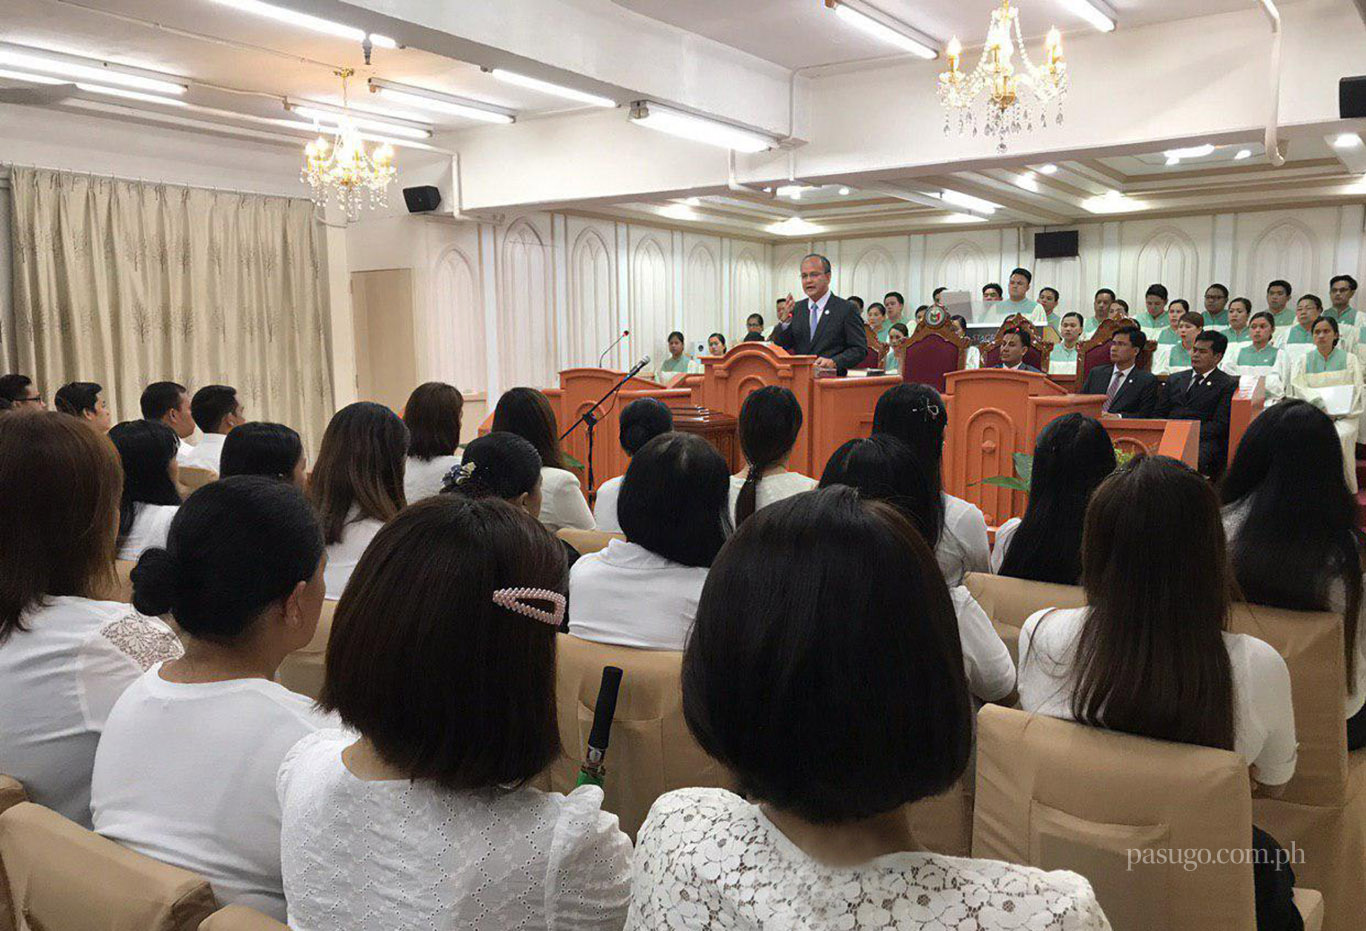 On July 21, 2019, choir members from the Ecclesiastical District of Macau were reminded the importance of singing praises to the Lord God, in line with celebrating the Church's 105th anniversary.